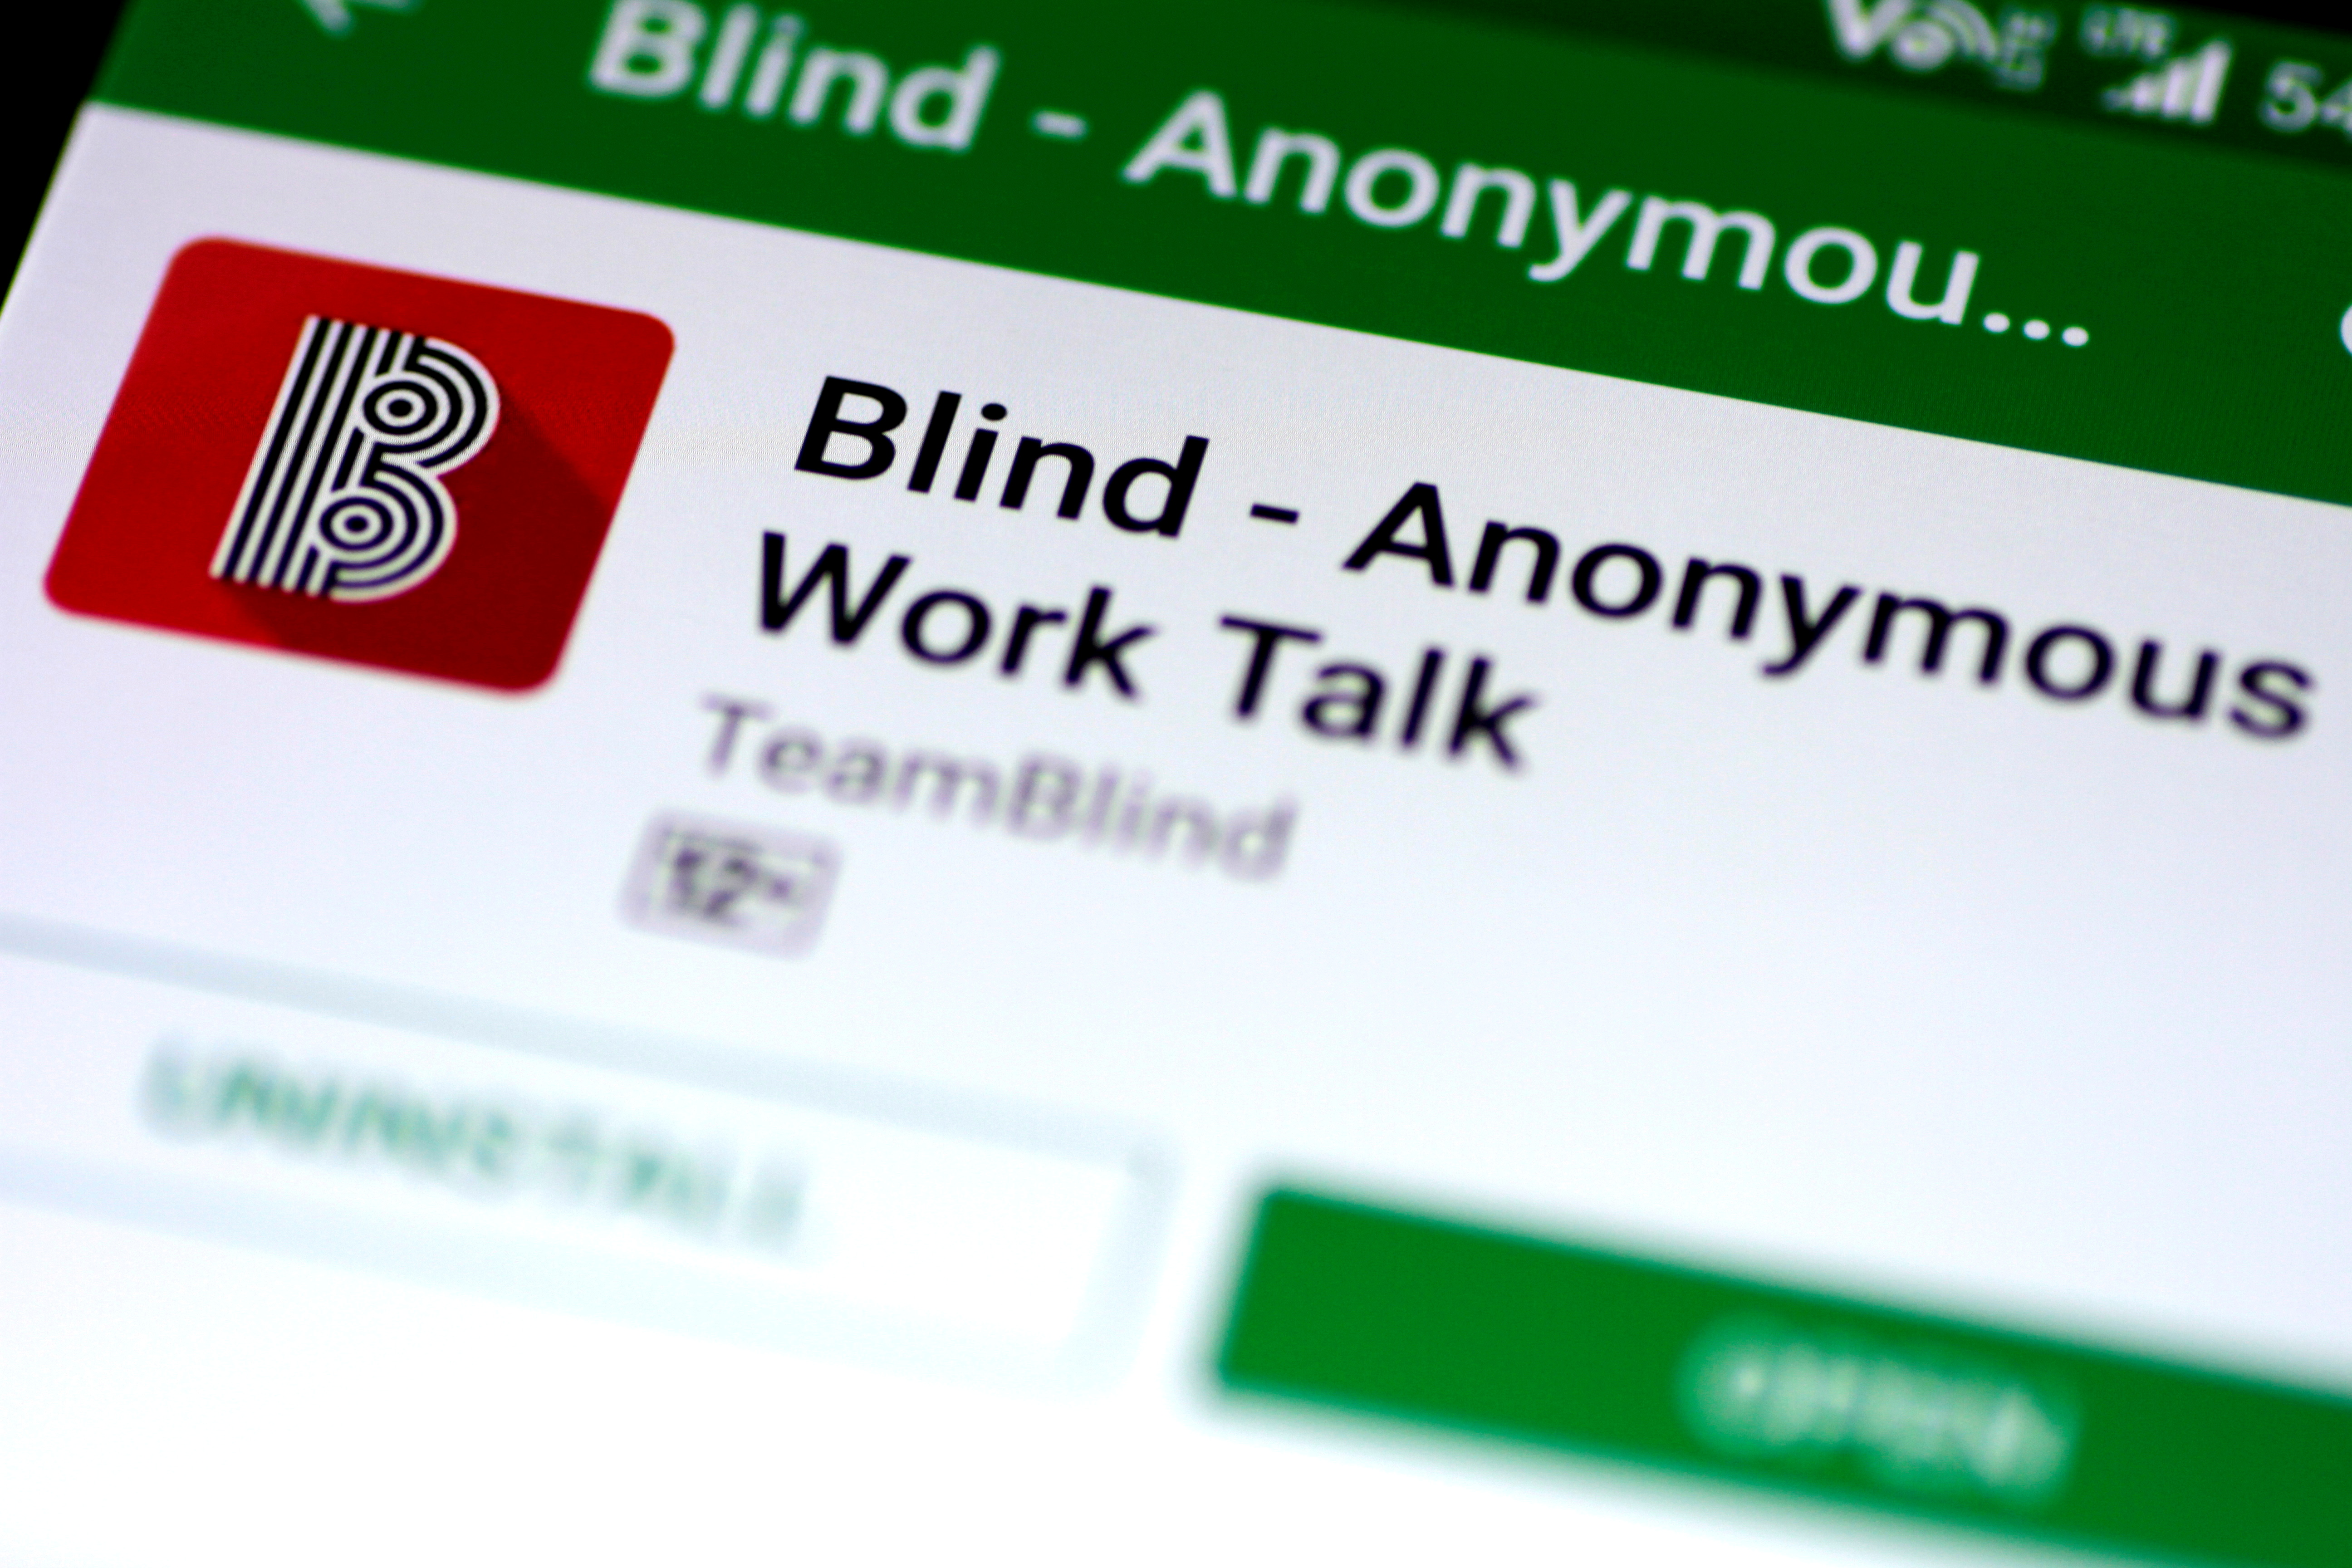 The Blind anonymous work talk application is seen in the Google Play store on a mobile phone in this illustration photo February 6, 2018.  REUTERS/Thomas White/Illustration/File Photo